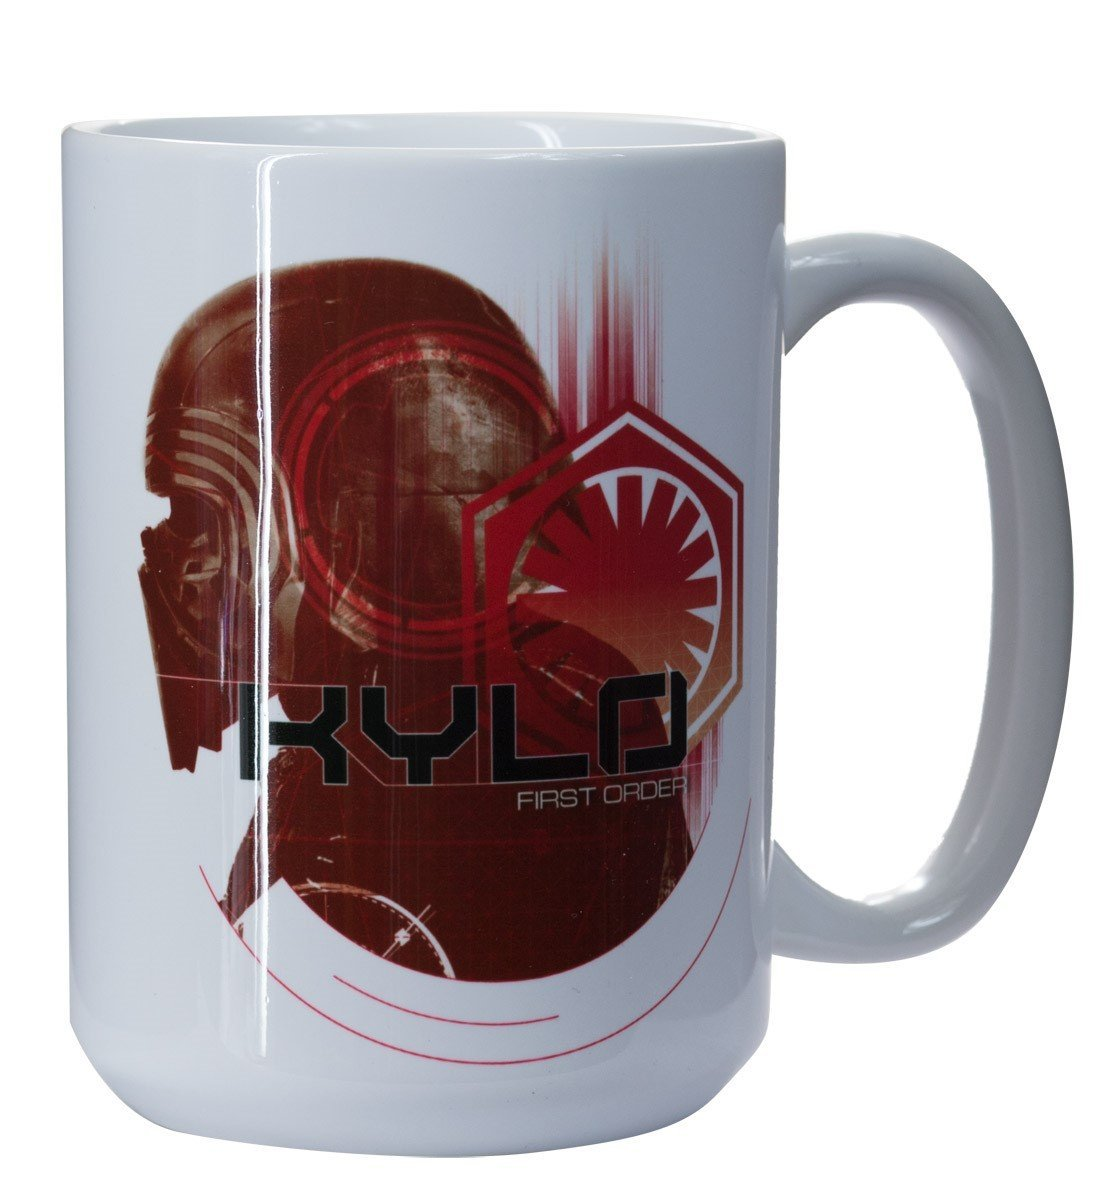 TLJ Kylo Ren First Order Collectable Mug